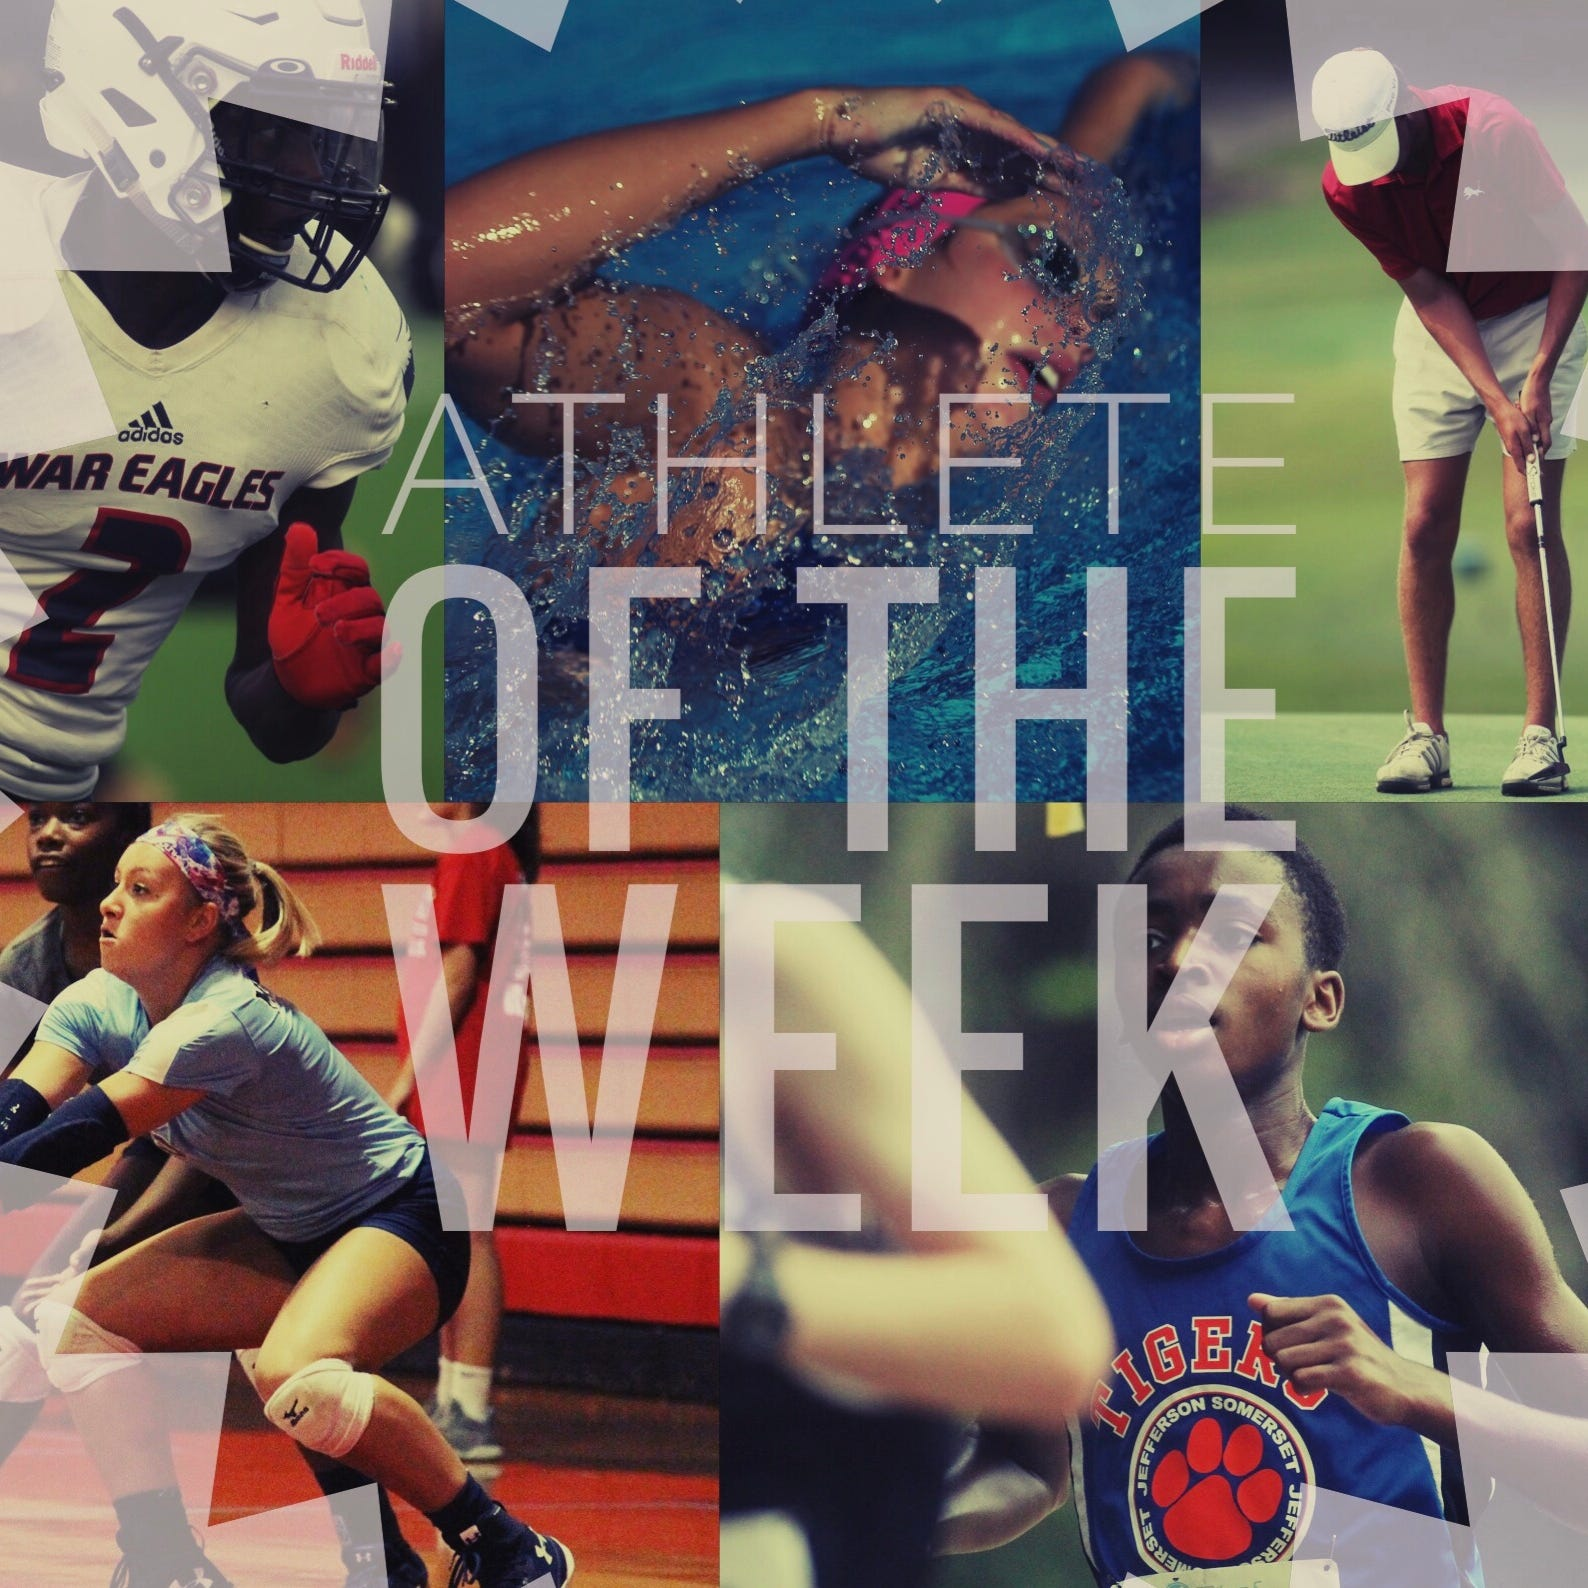 ATHLETE OF THE WEEK POLL: Fall, Week 5 (Sept. 17-22, 2018)